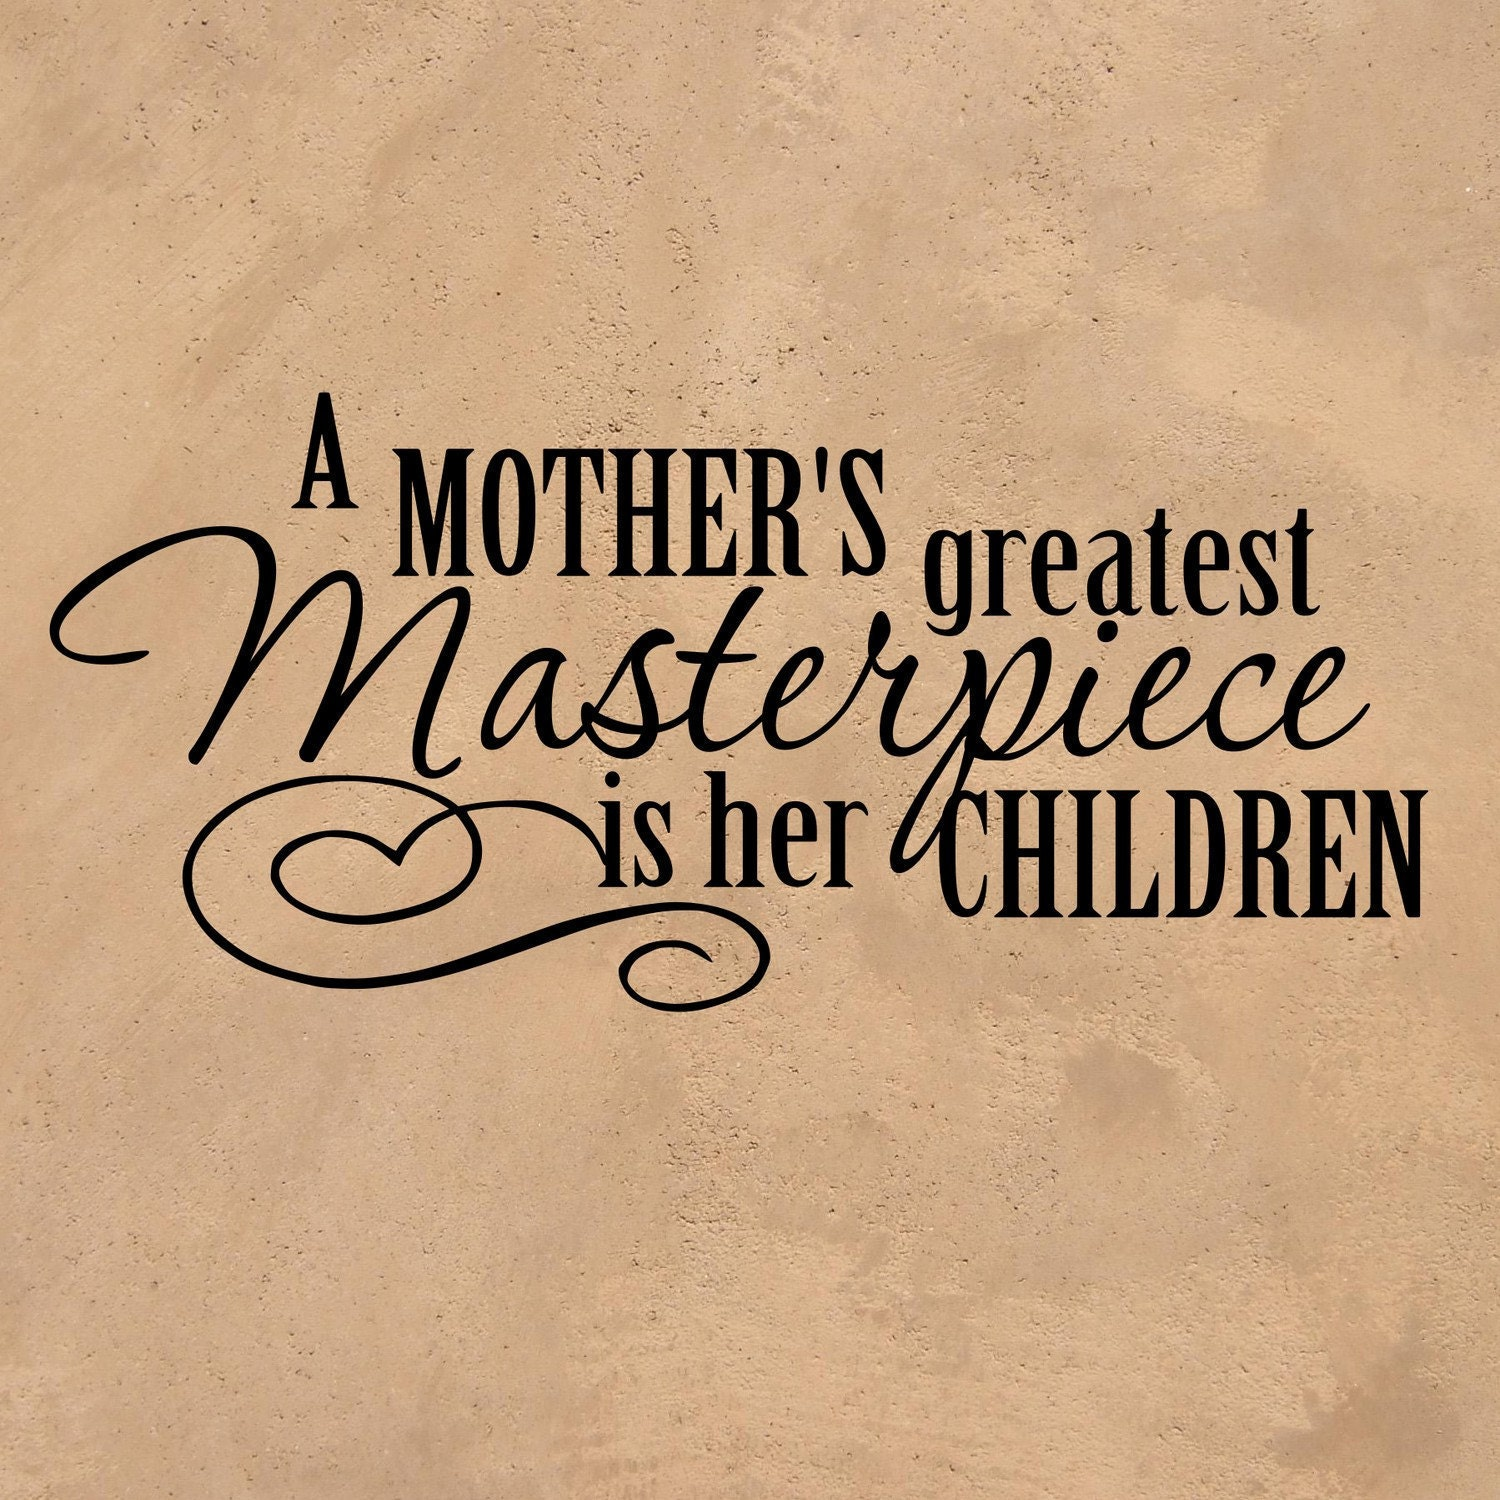 Children Love Quotes Mother Love Quotes To Her Children  The Best Love Quotes